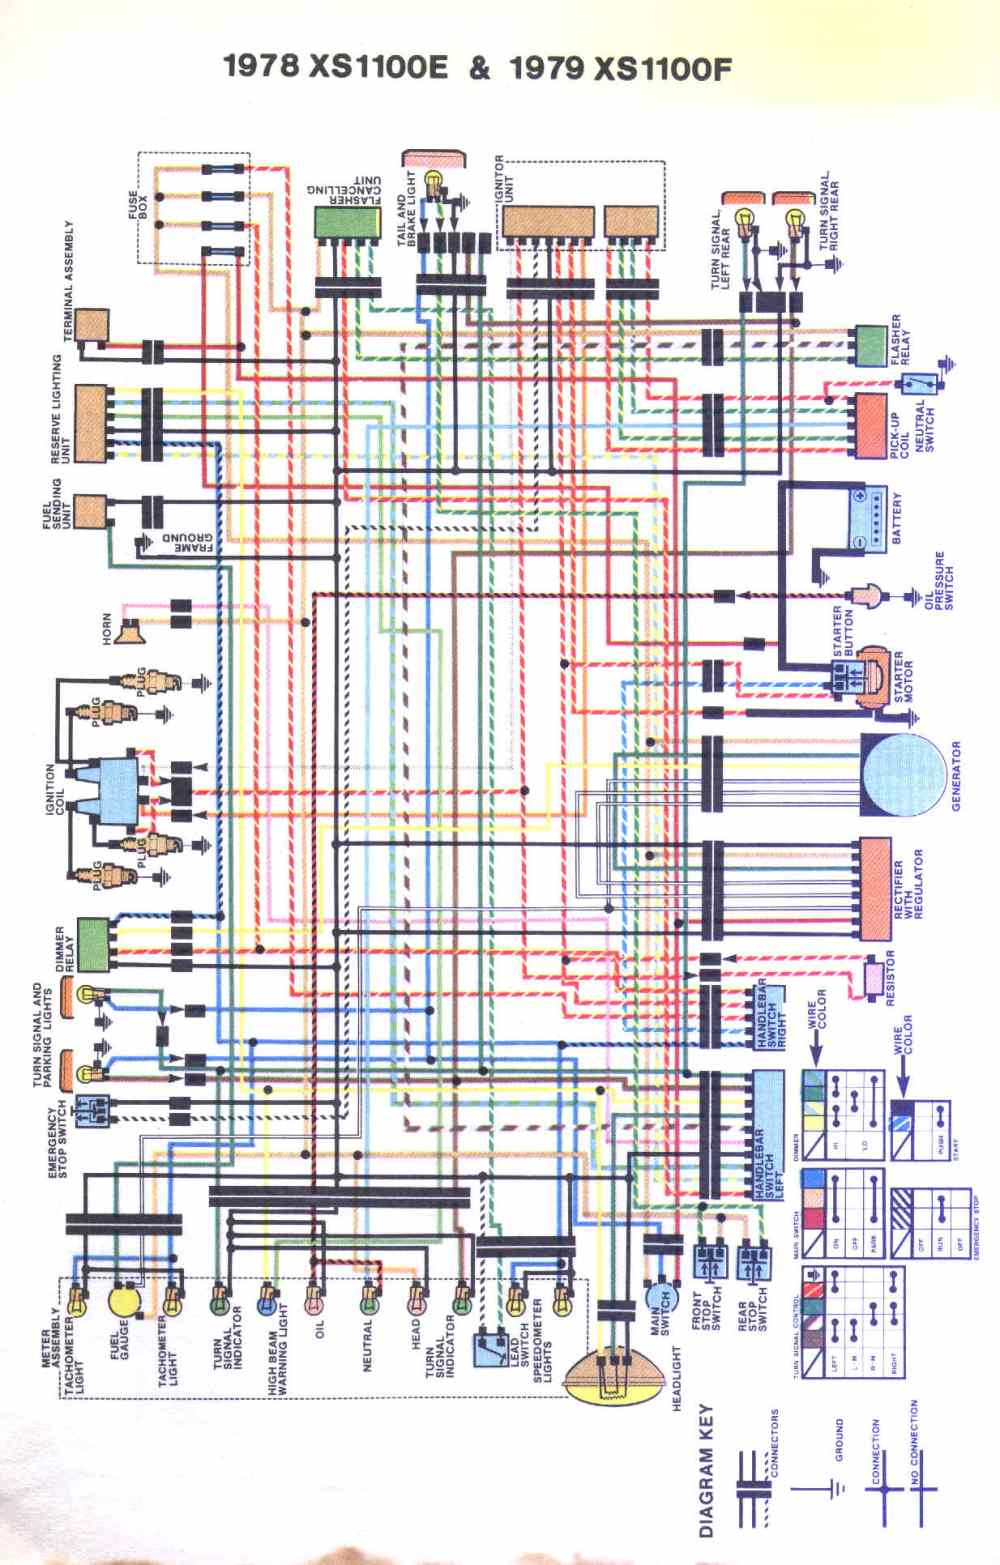 medium resolution of 79 trans am wiring diagram wiring diagram 1972 pontiac trans am wiring diagram